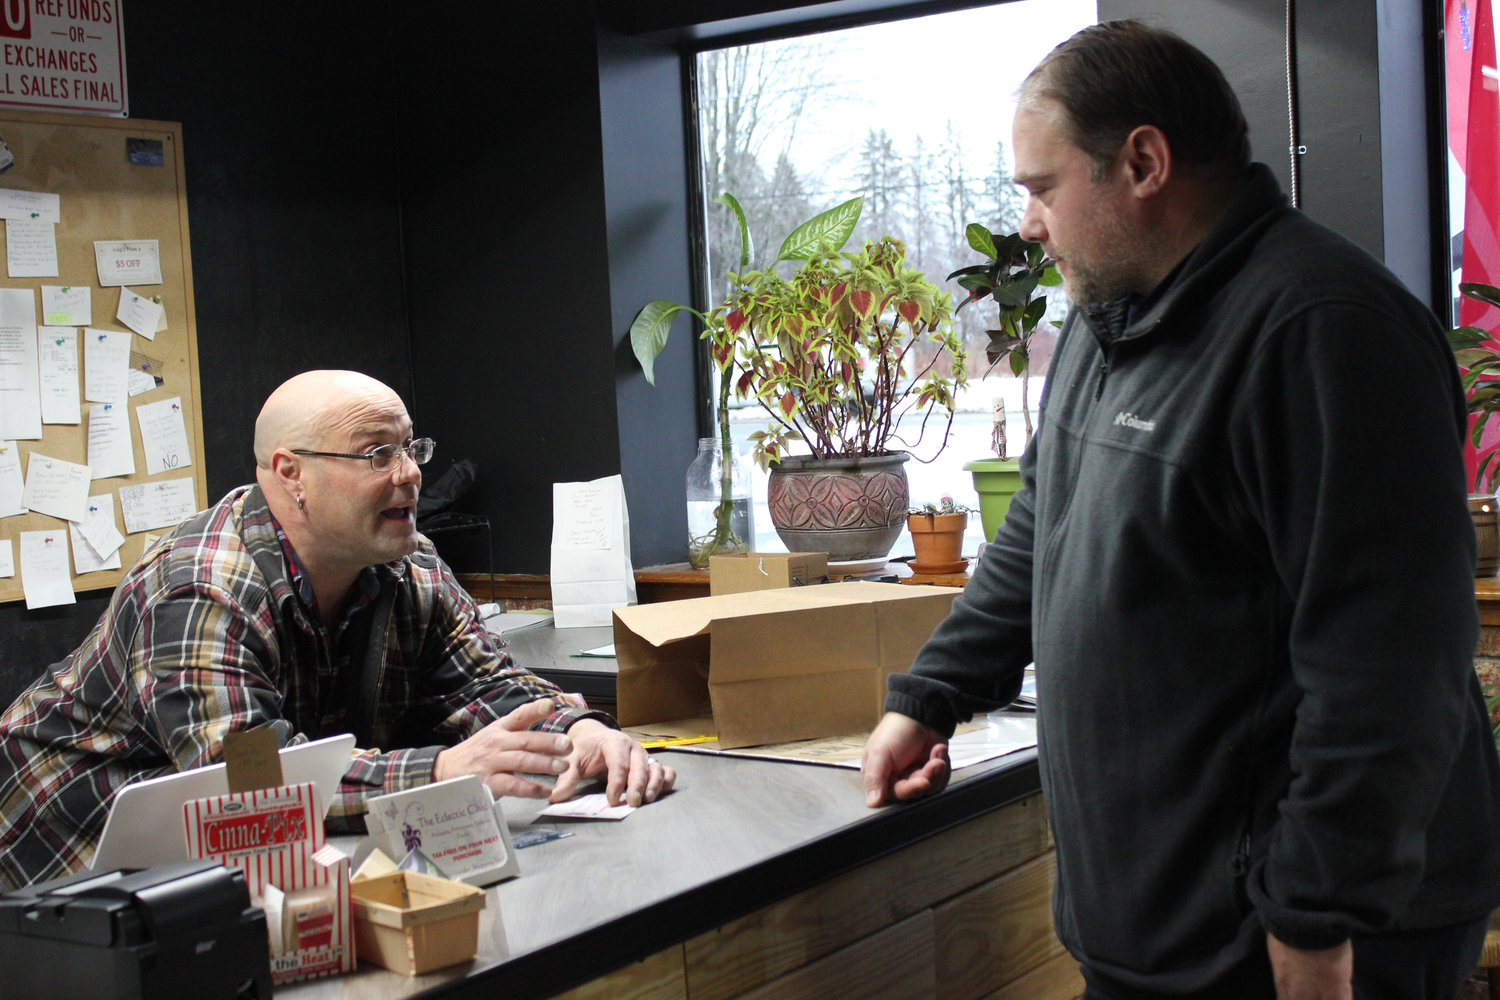 TALKING SHOP — Eclectic co-owner Darren Pollack, left, talks with local author Peter Leonard at the Eclectic Mercantile.